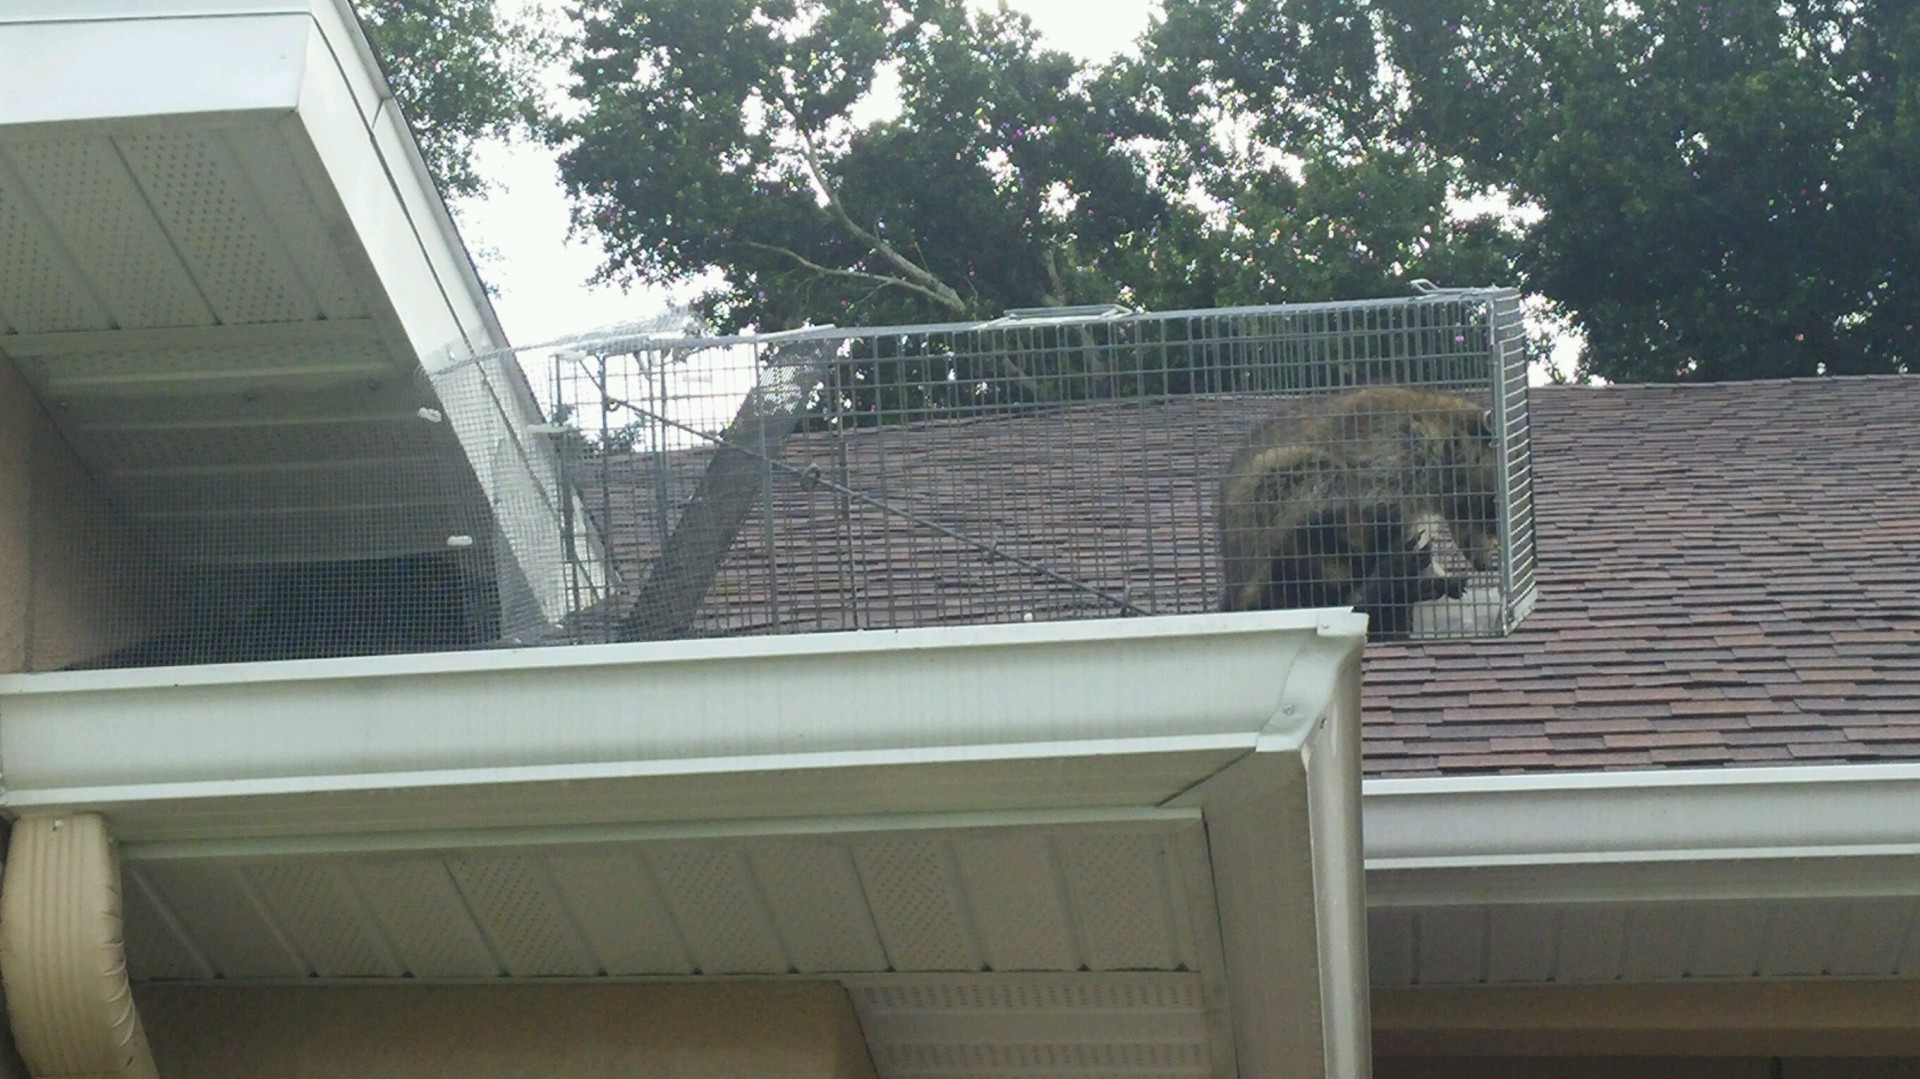 Raccon Trap in Clermont. Sometimes you have to get creative